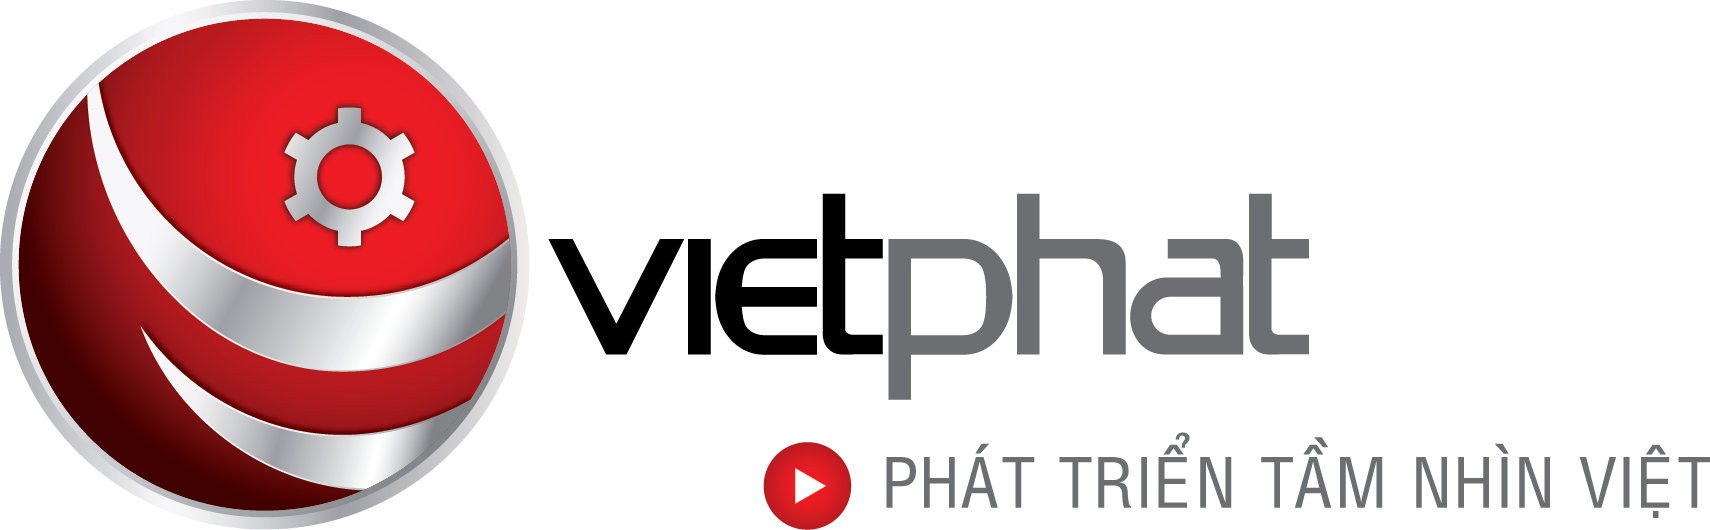 Description: http://dochoiotovietphat.vn/apt-upload/image/data/logo-vietphat.png